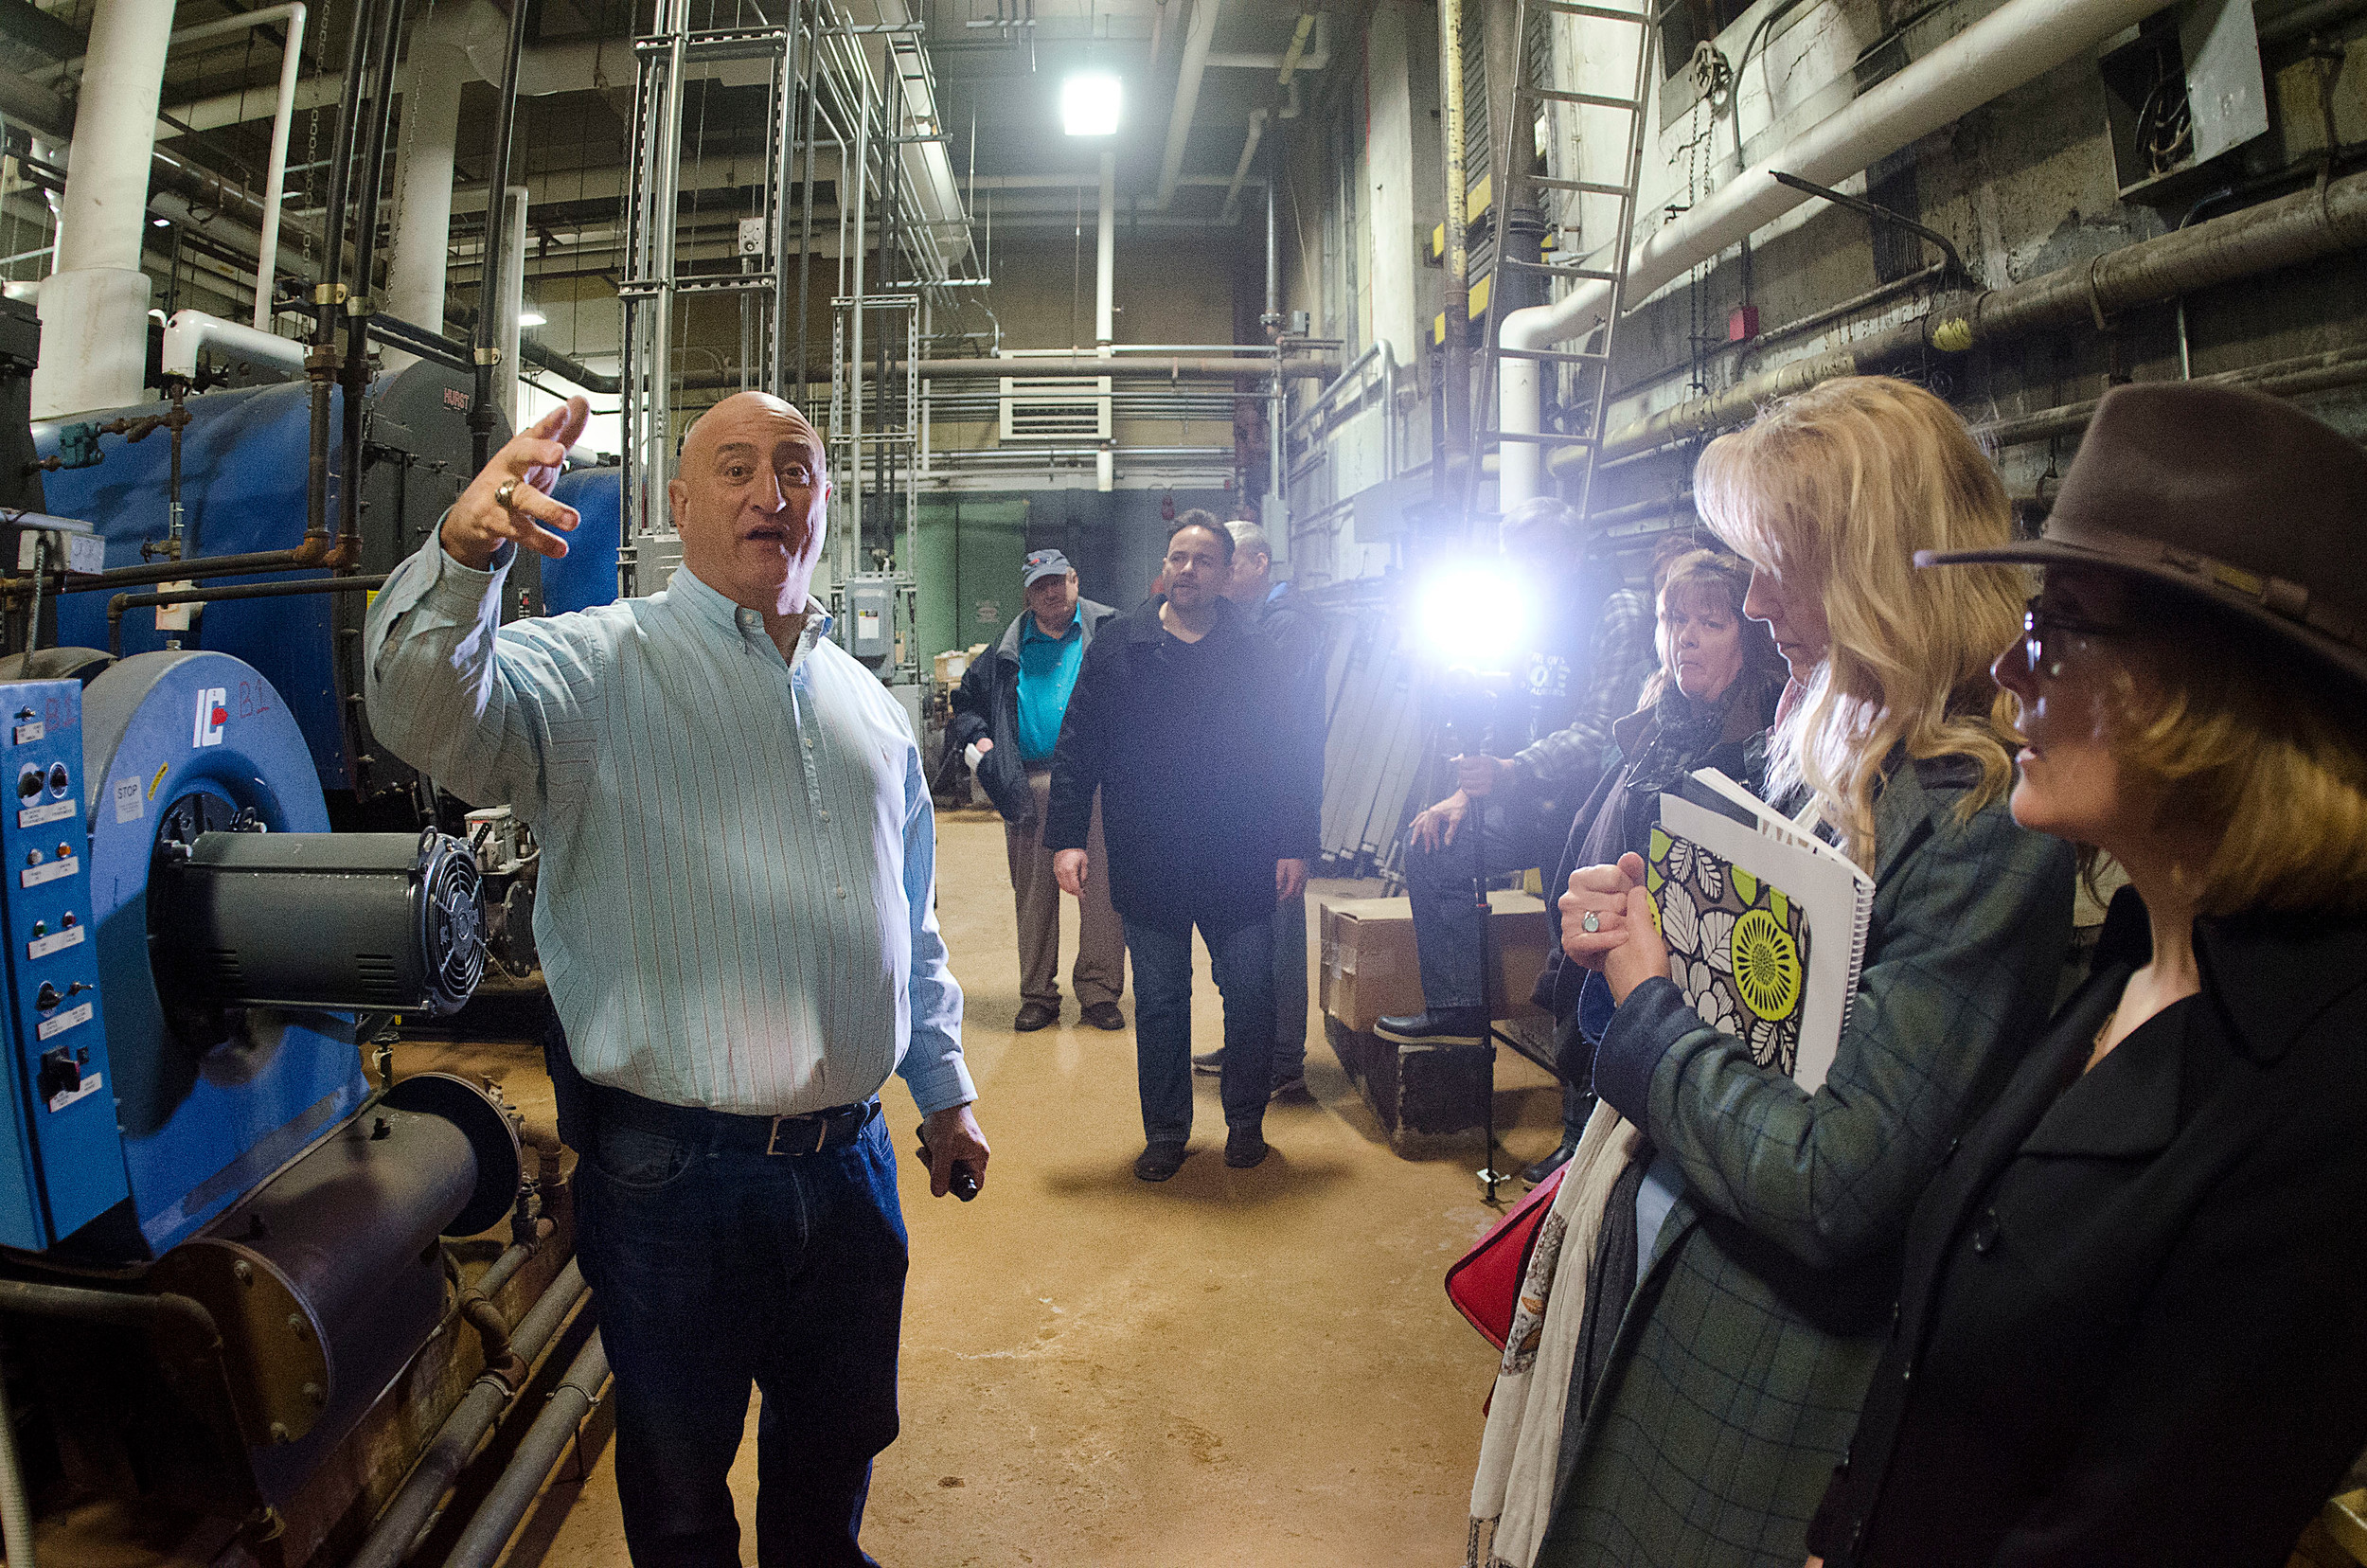 High school facilities director Tony Feola gives a tour of the school's boiler room to school committee and city council members. He explains that their is standing water underneath the boiler room.